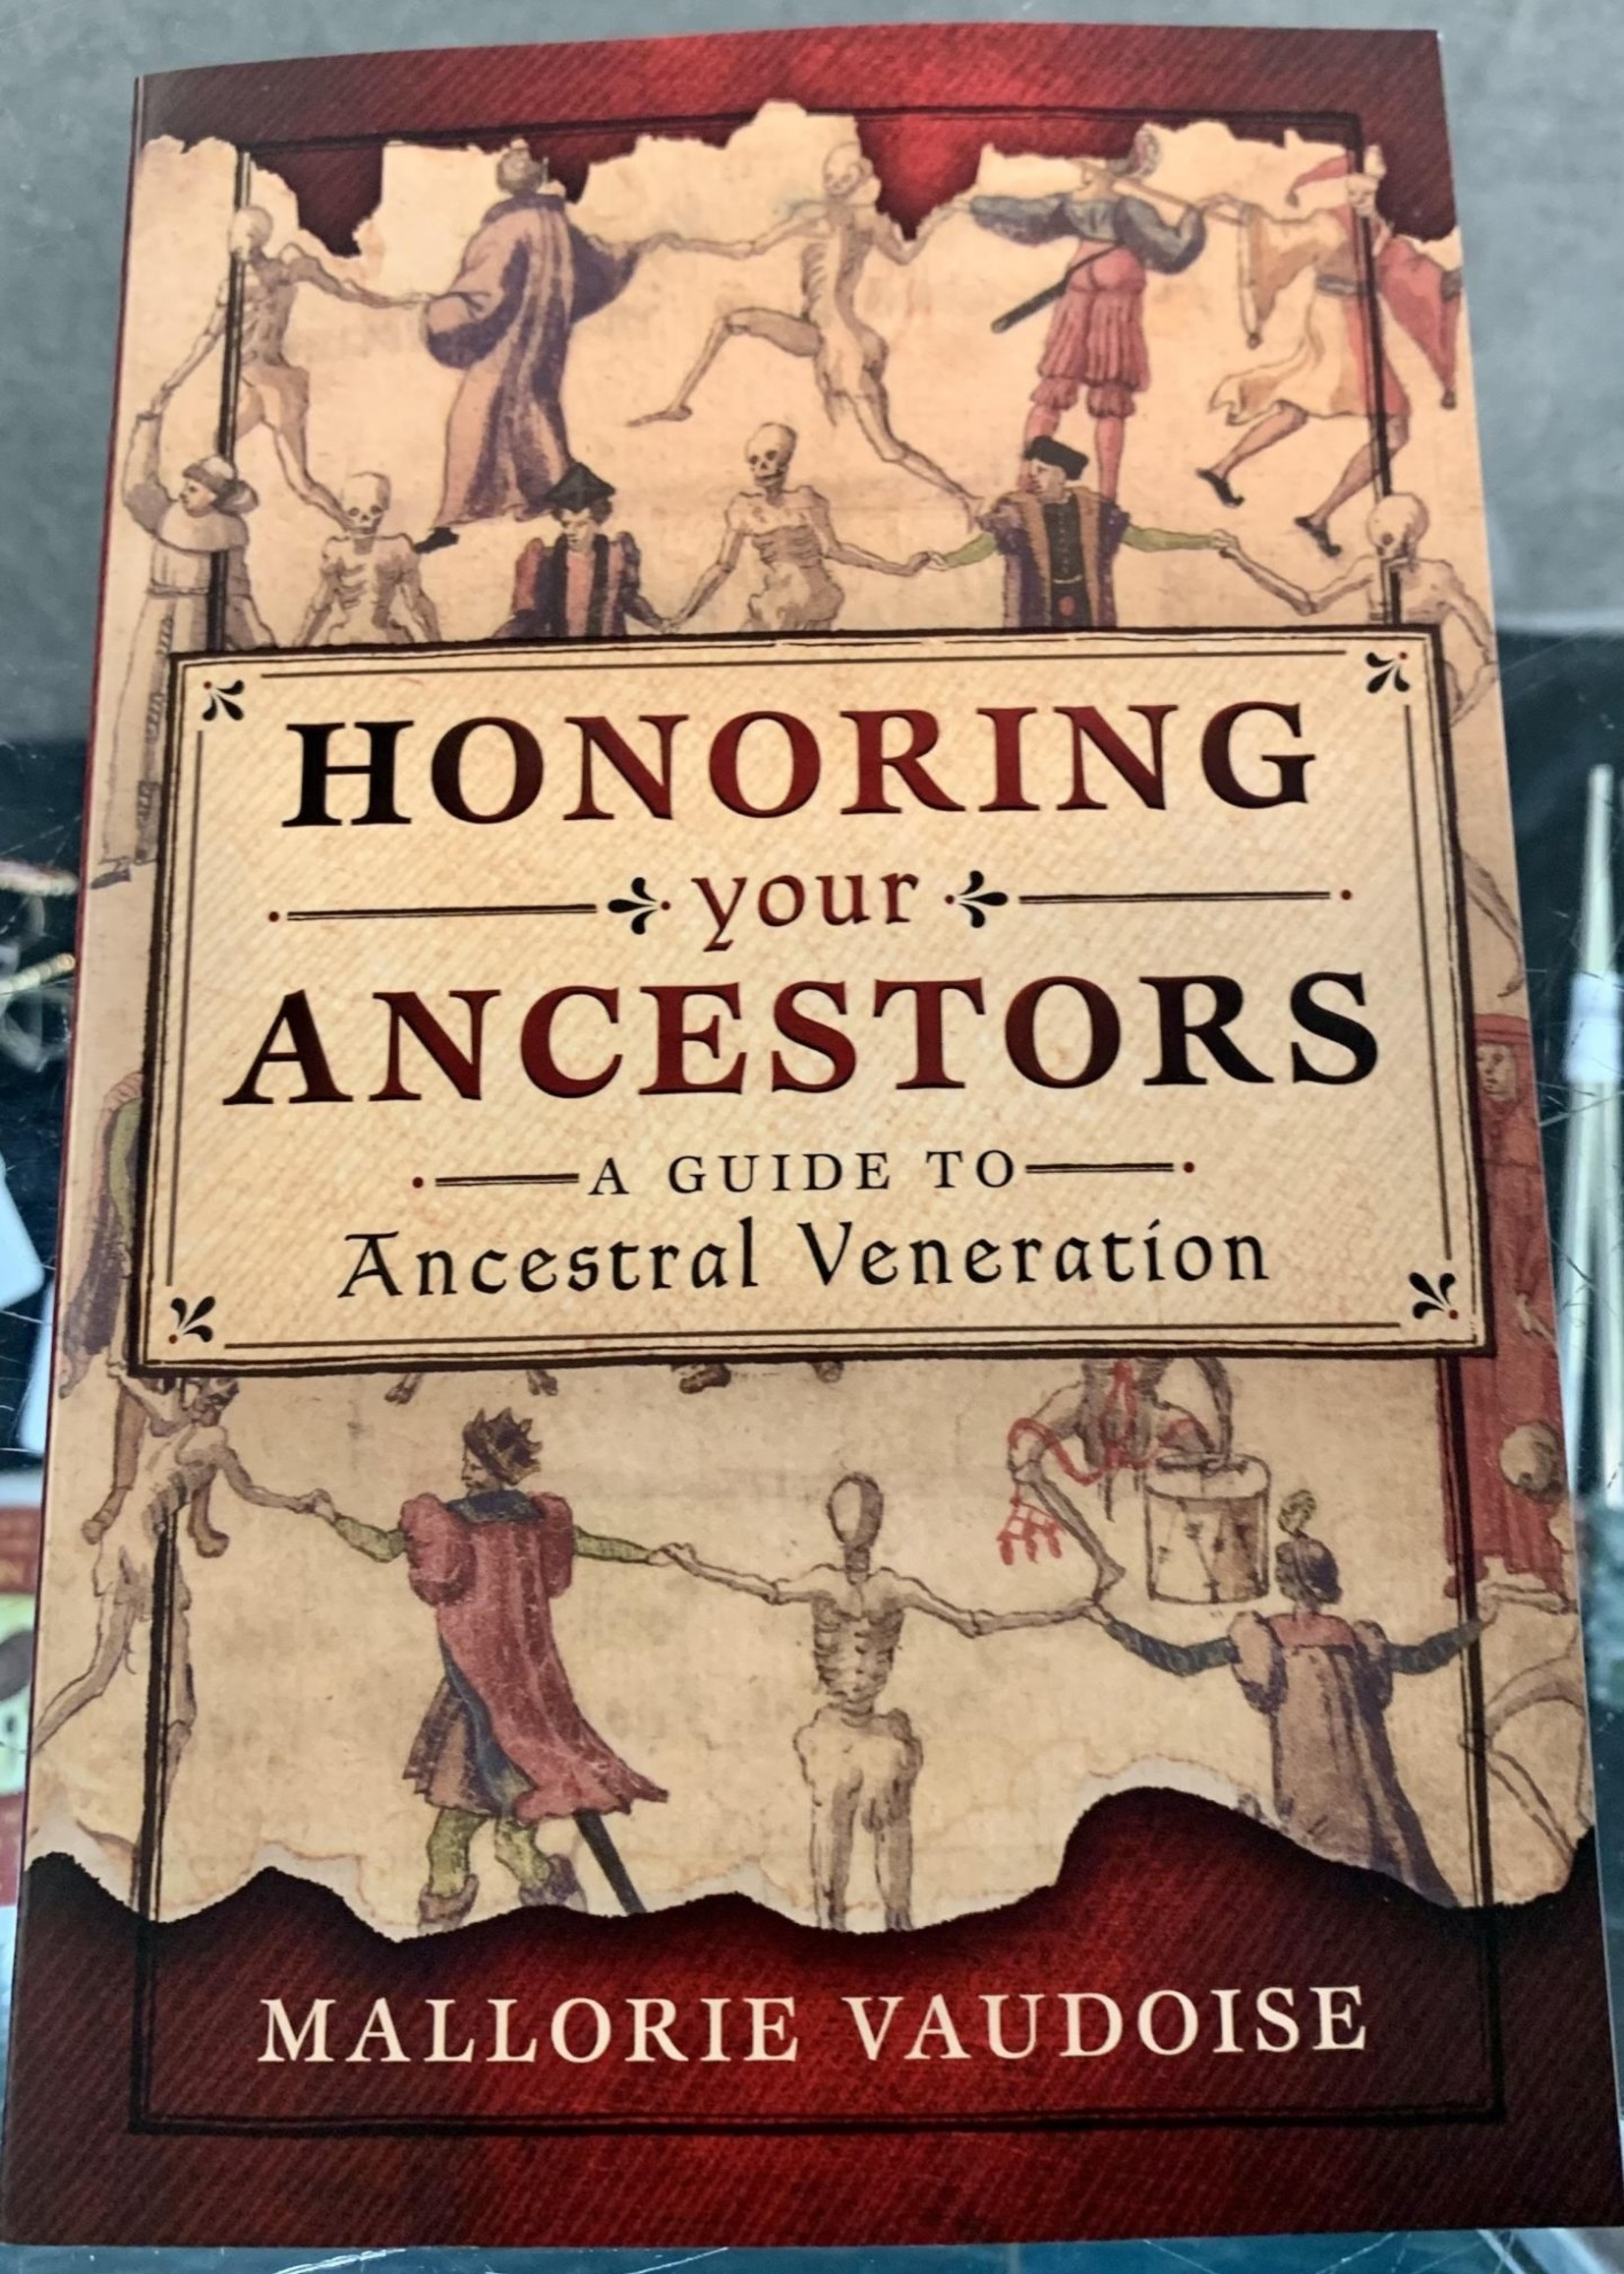 Honoring Your Ancestors - BY MALLORIE VAUDOISE